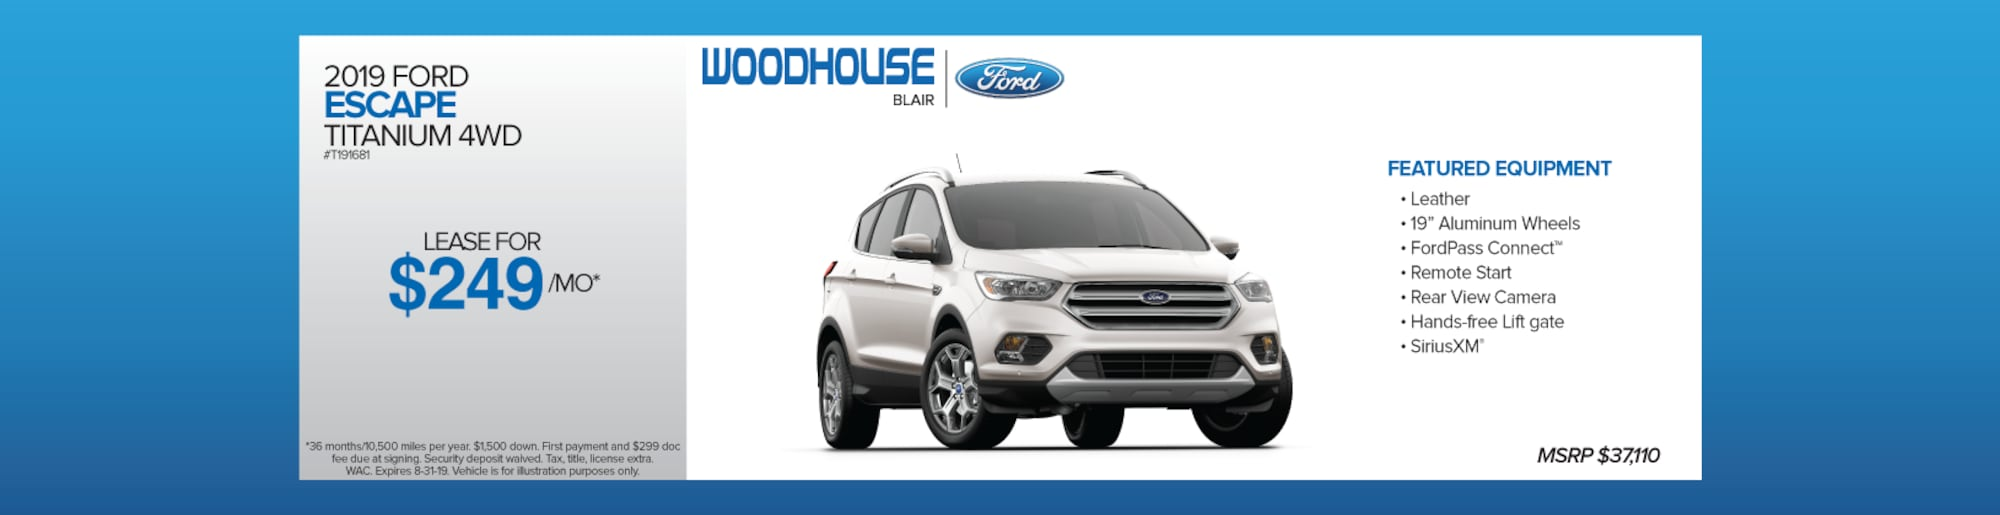 New & Used Ford Models | Woodhouse Ford Inc  | Blair, NE